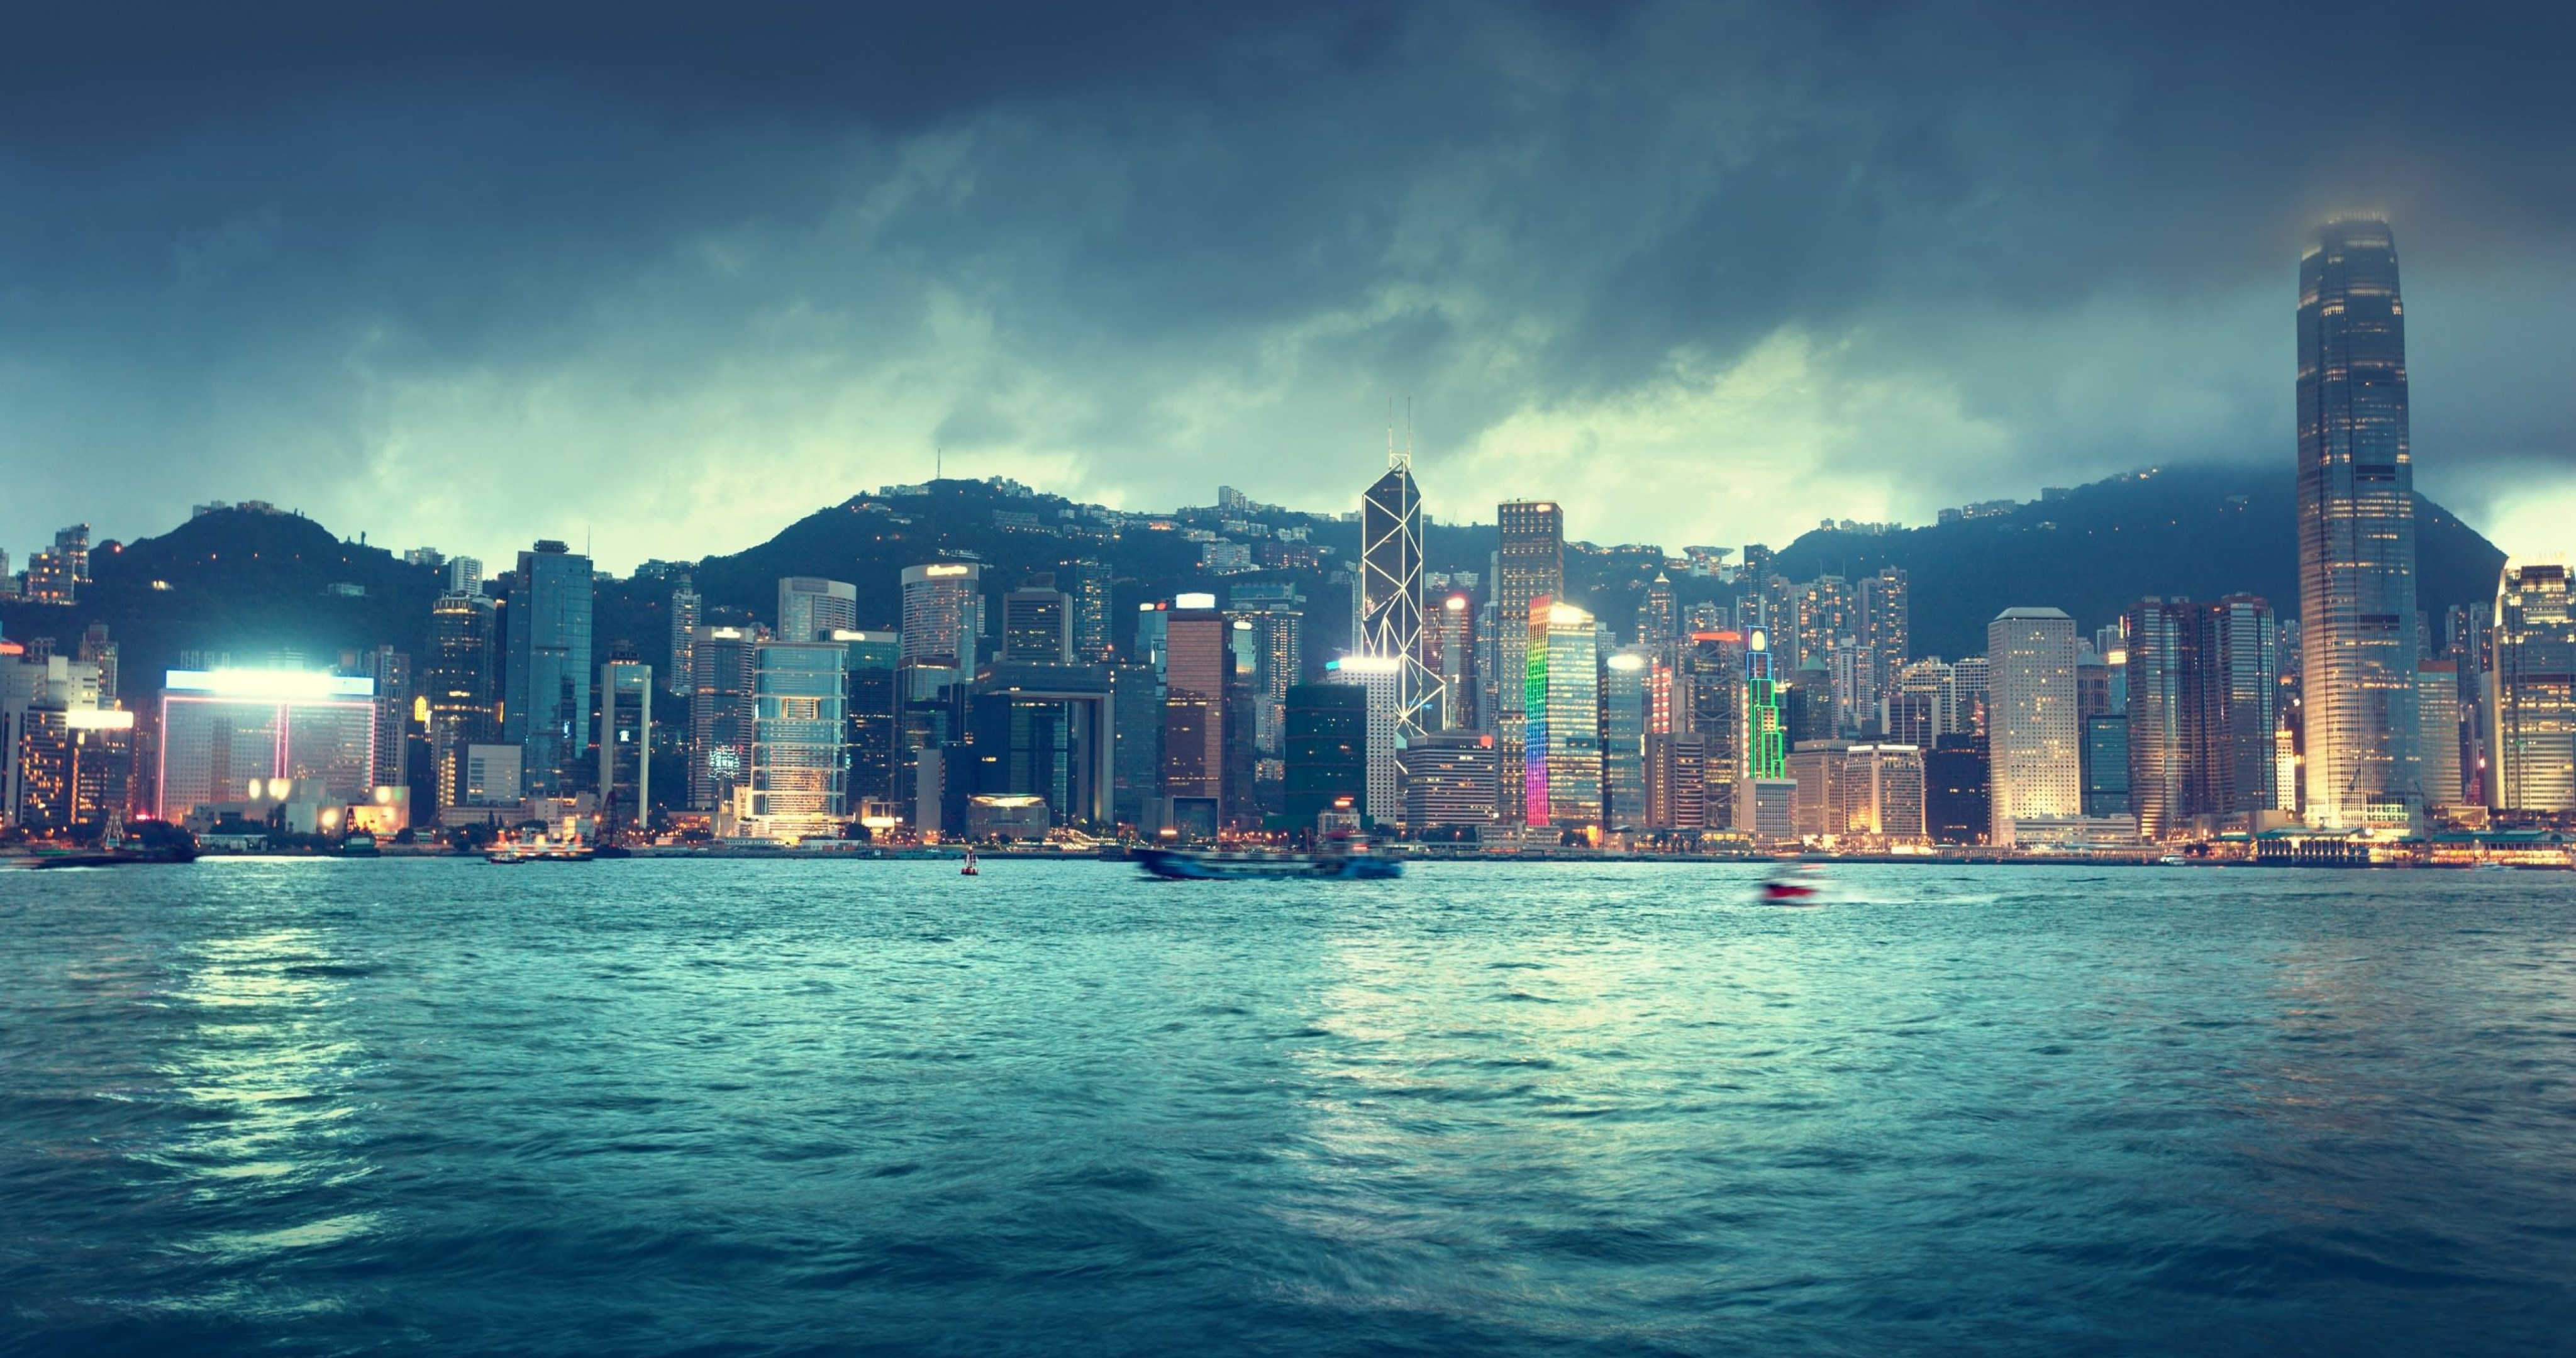 Hong Kong Skyline Wallpaper 4k Ultra Hd Wallpaper High